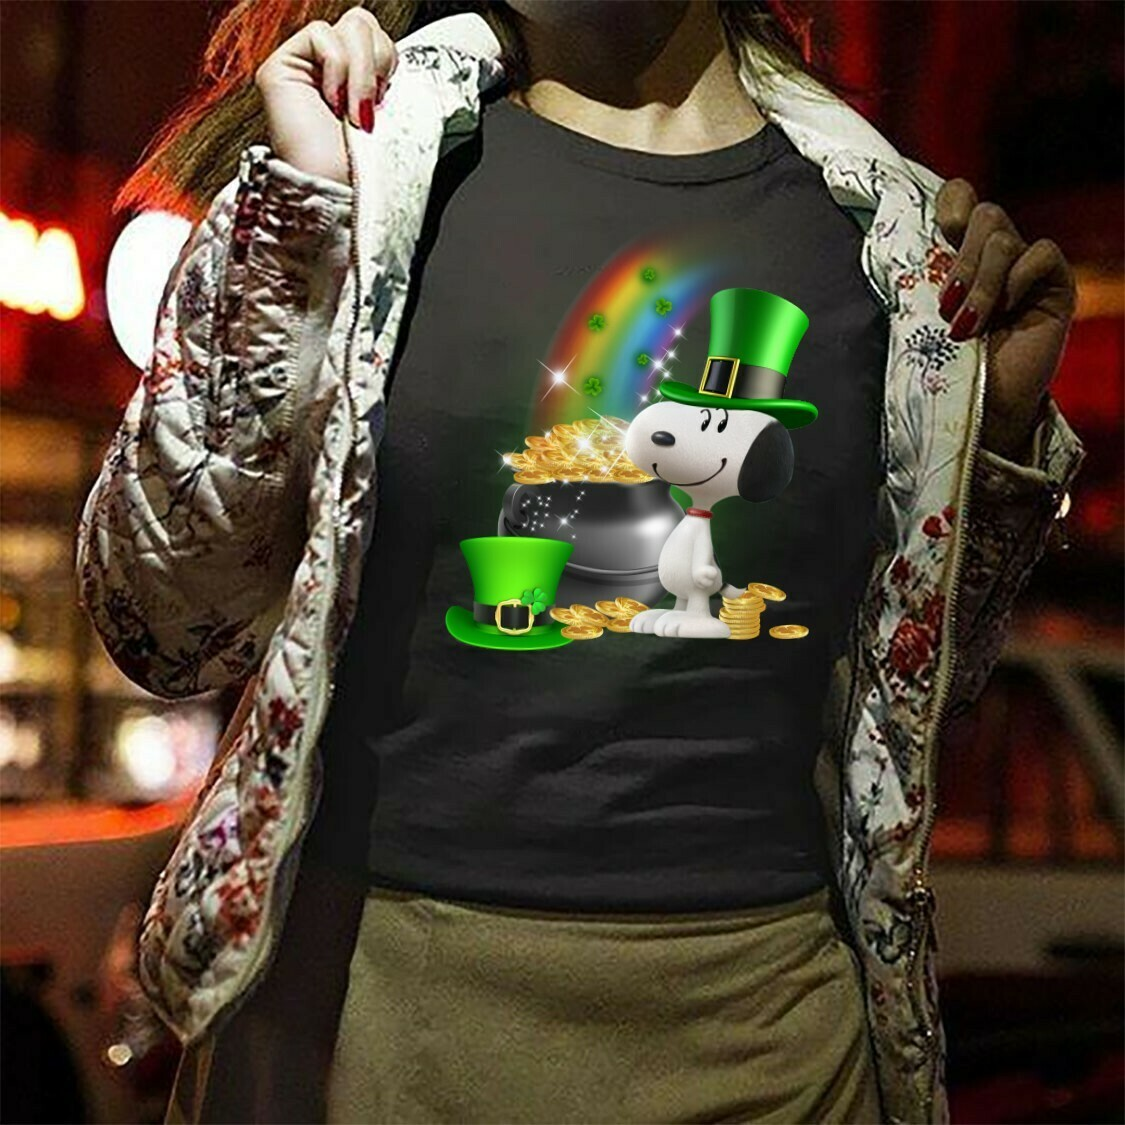 Peanuts Snoopy Feelin' Lucky Charm St. Patrick's Day funny,Snoopy with Leprechauns Pots of Gold and Rainbows Shamrocks  T-Shirt Hoodie Sweatshirt Sweater Tee Kids Youth Gifts Jolly Family Gifts